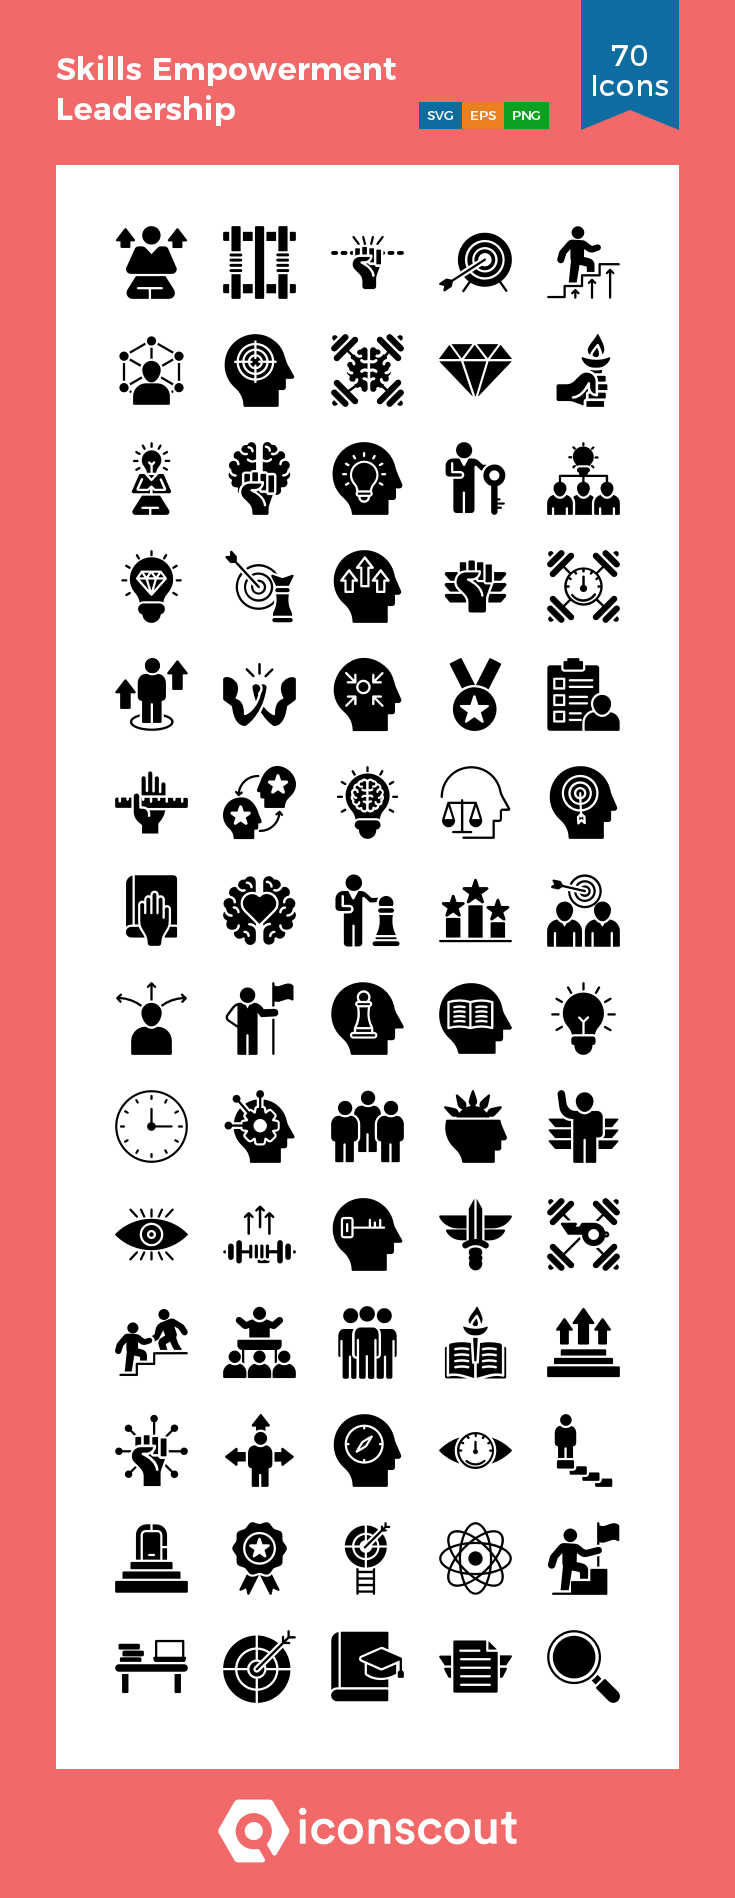 Download Skills Empowerment Leadership Icon Pack Available In Svg Png Eps Ai Icon Fonts Leadership Leadership Quotes Work Positive Quotes For Work